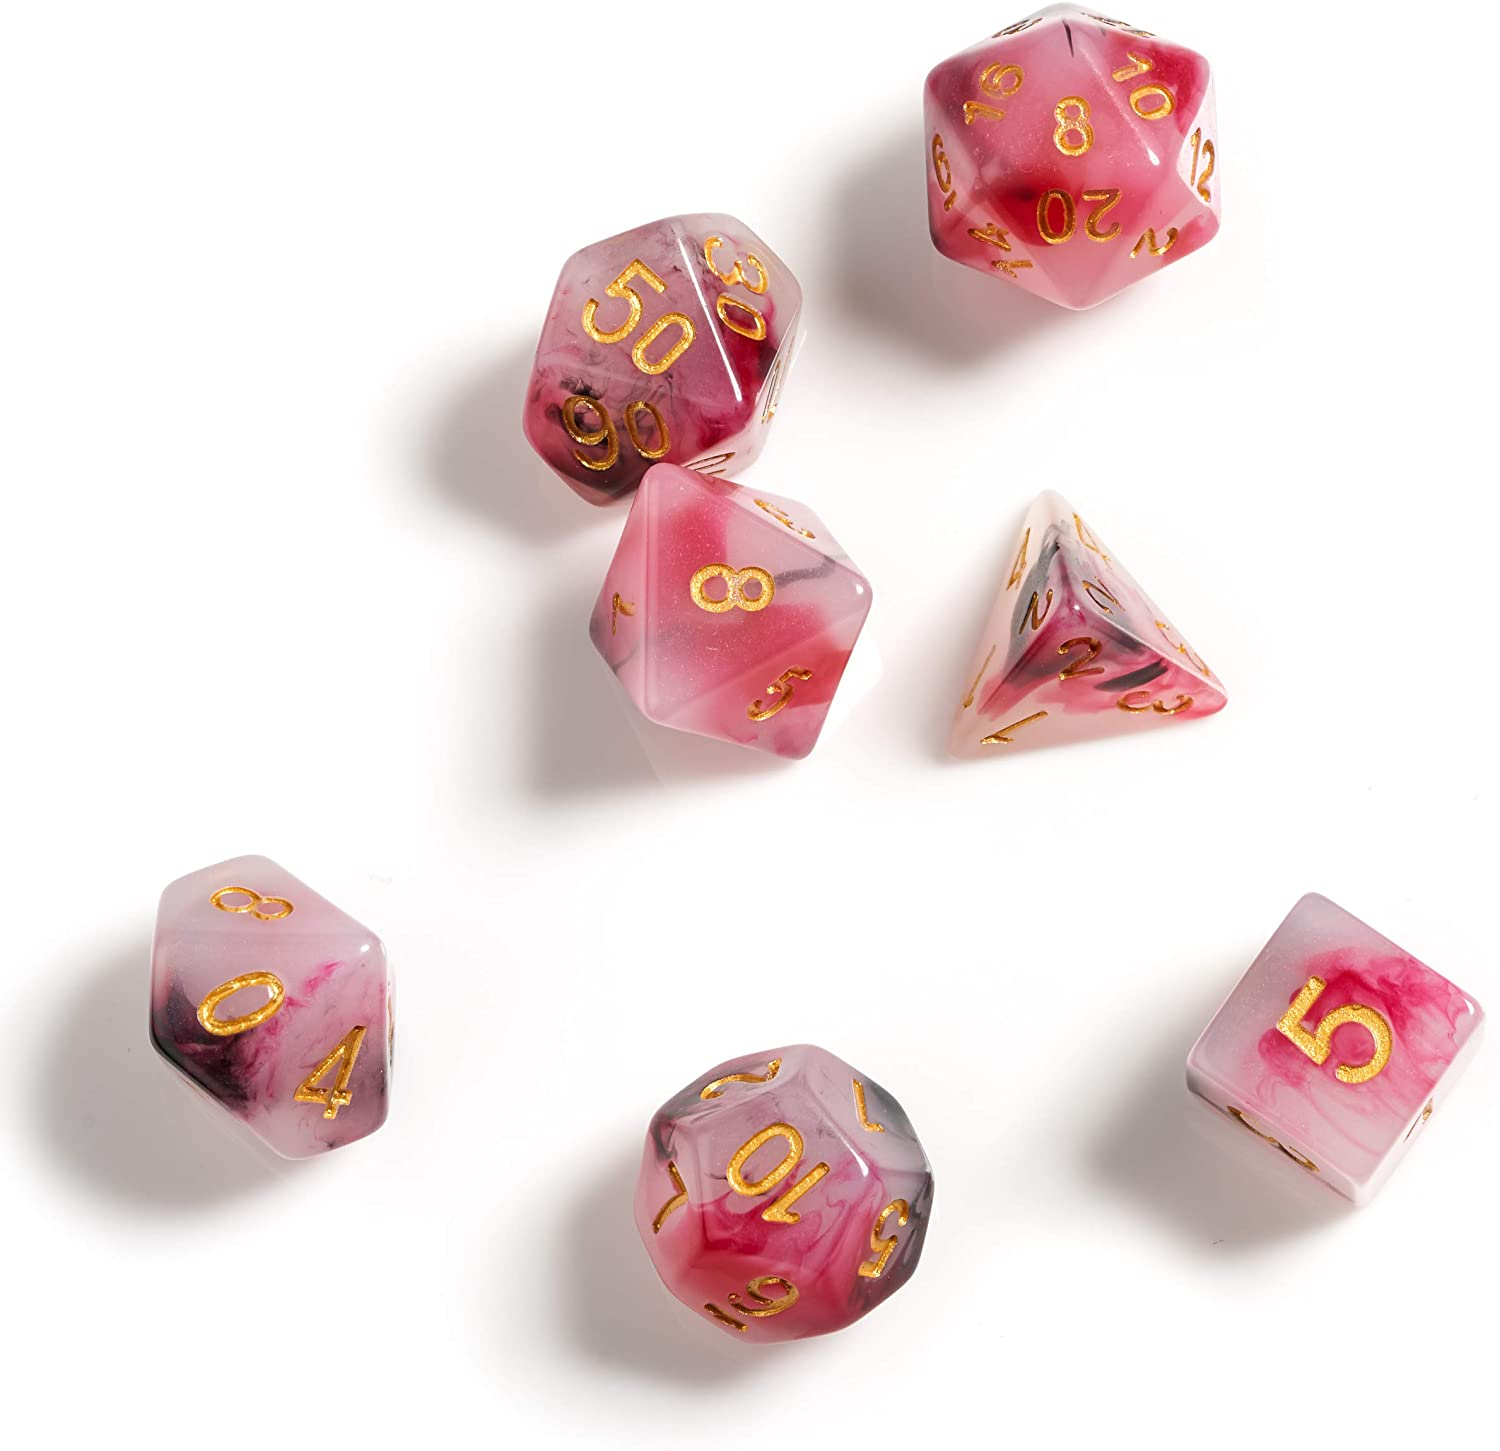 Sirius a Dice:  Piece RPG 8 Dice - Marble Pink & Black & Red | Battle Bliss